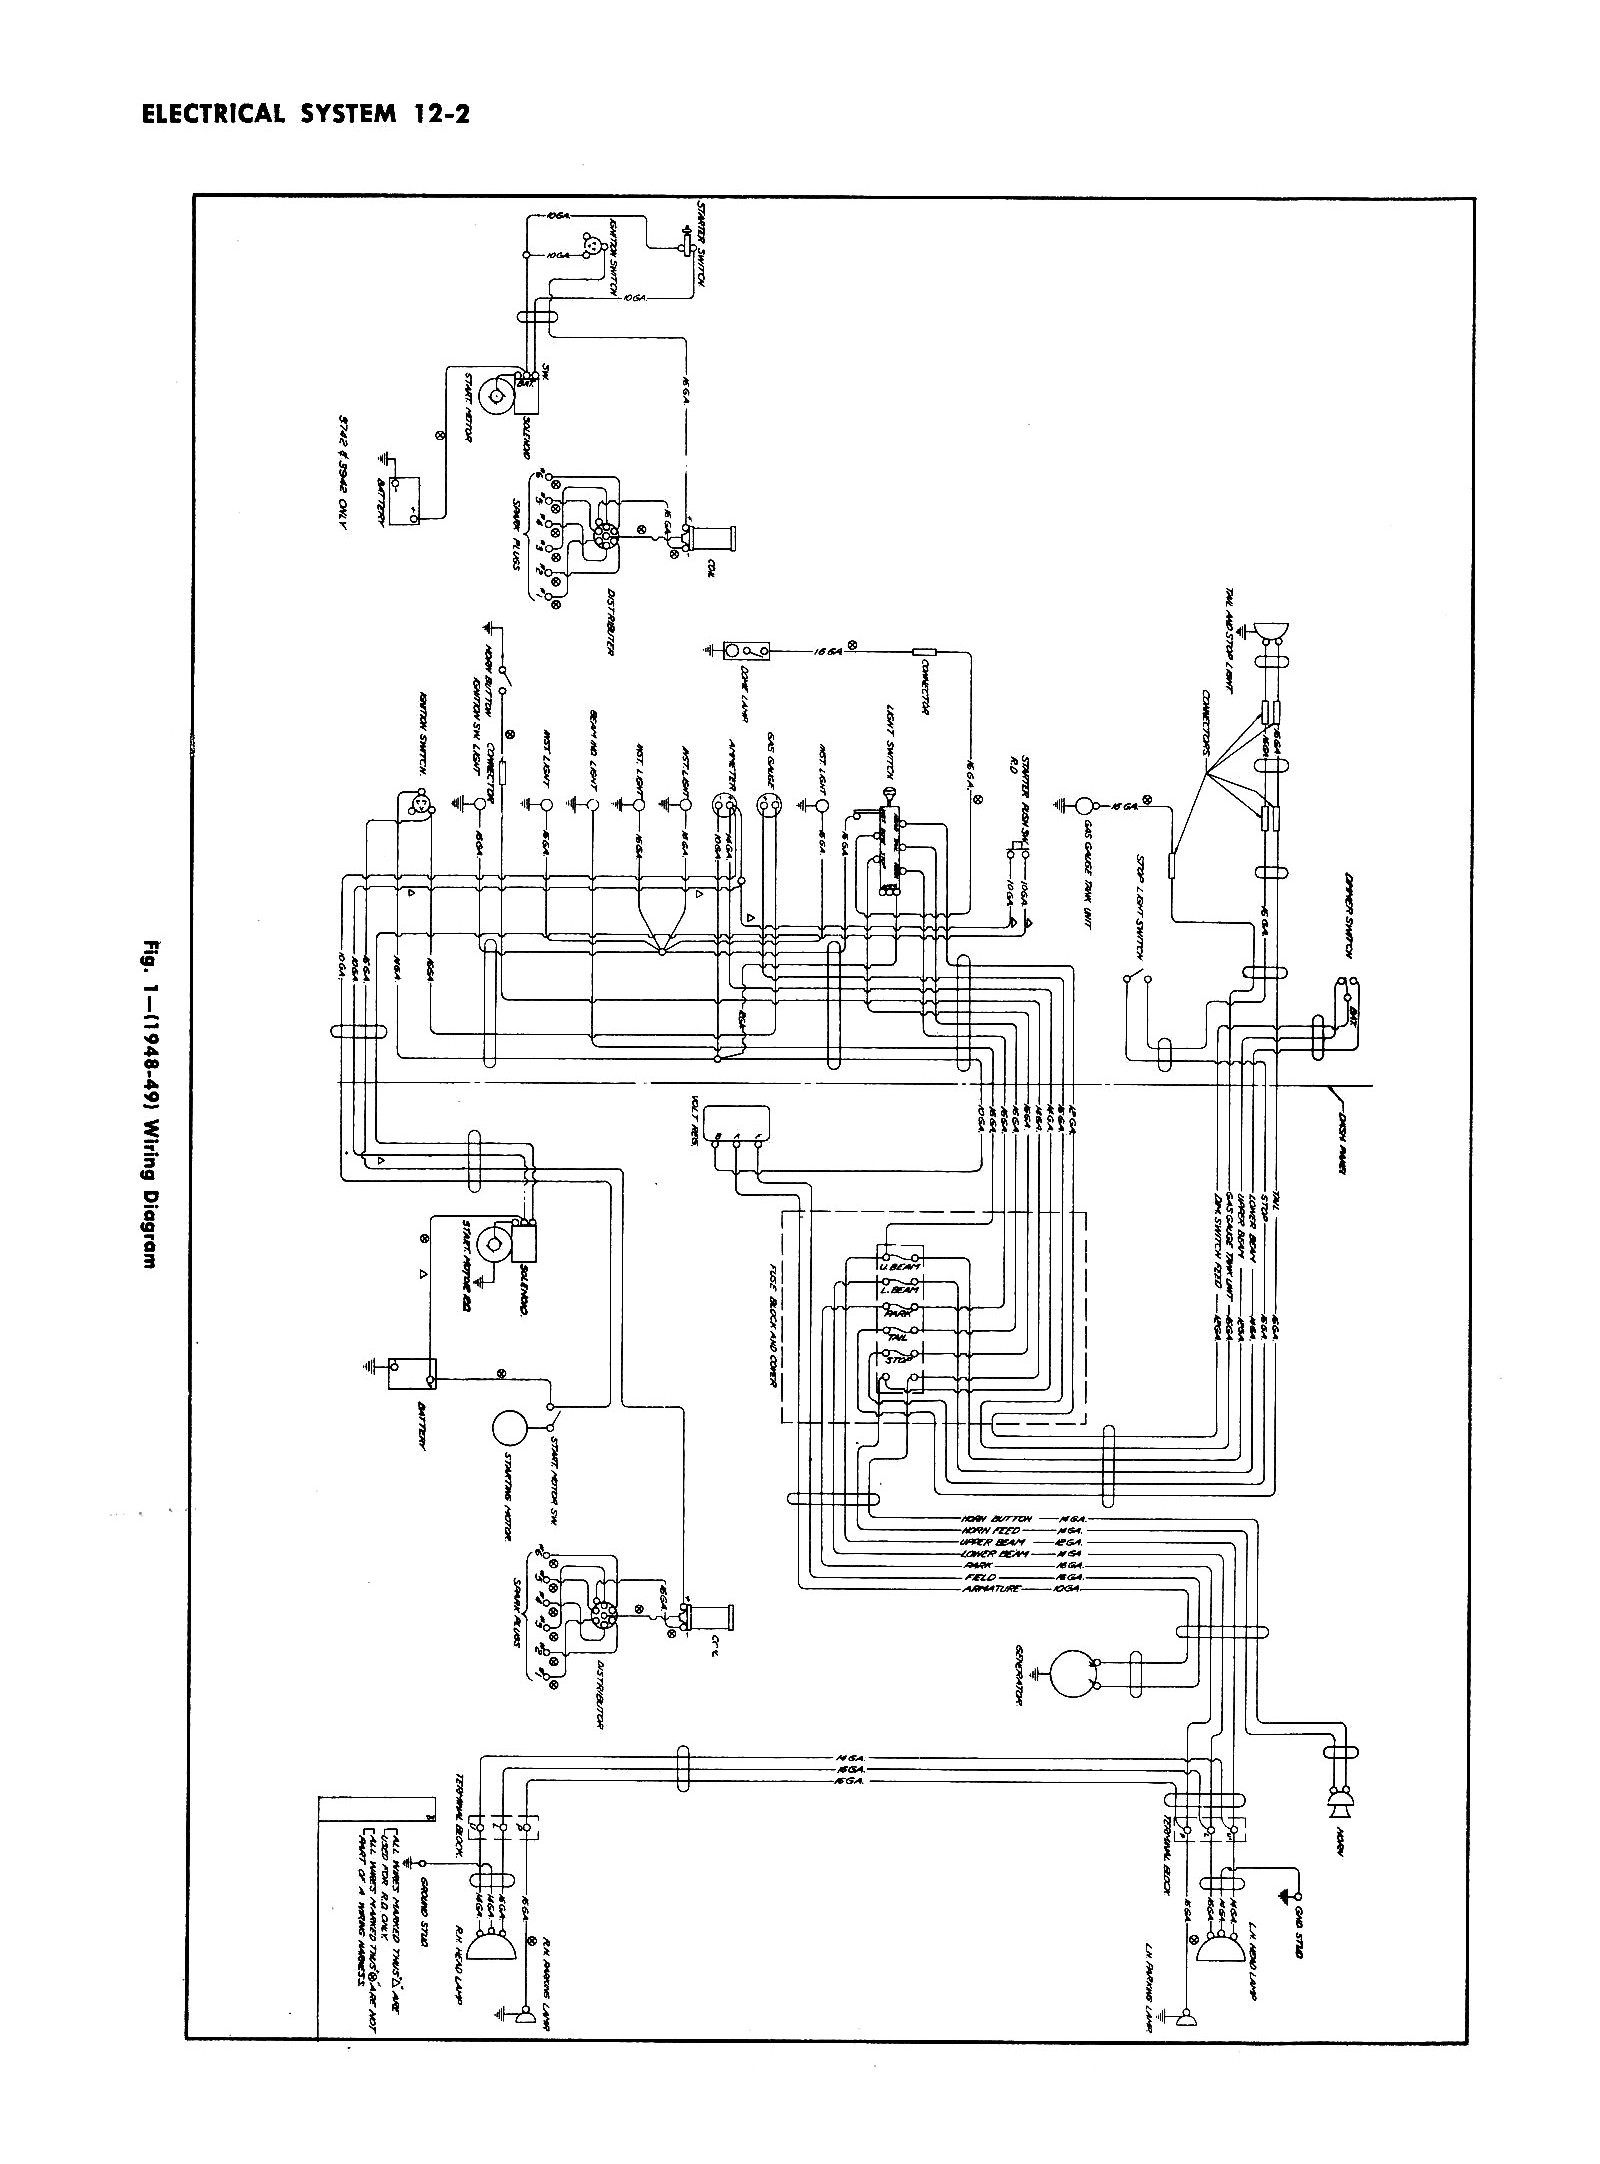 48car chevy wiring diagrams 1954 chevrolet wiring diagram at edmiracle.co